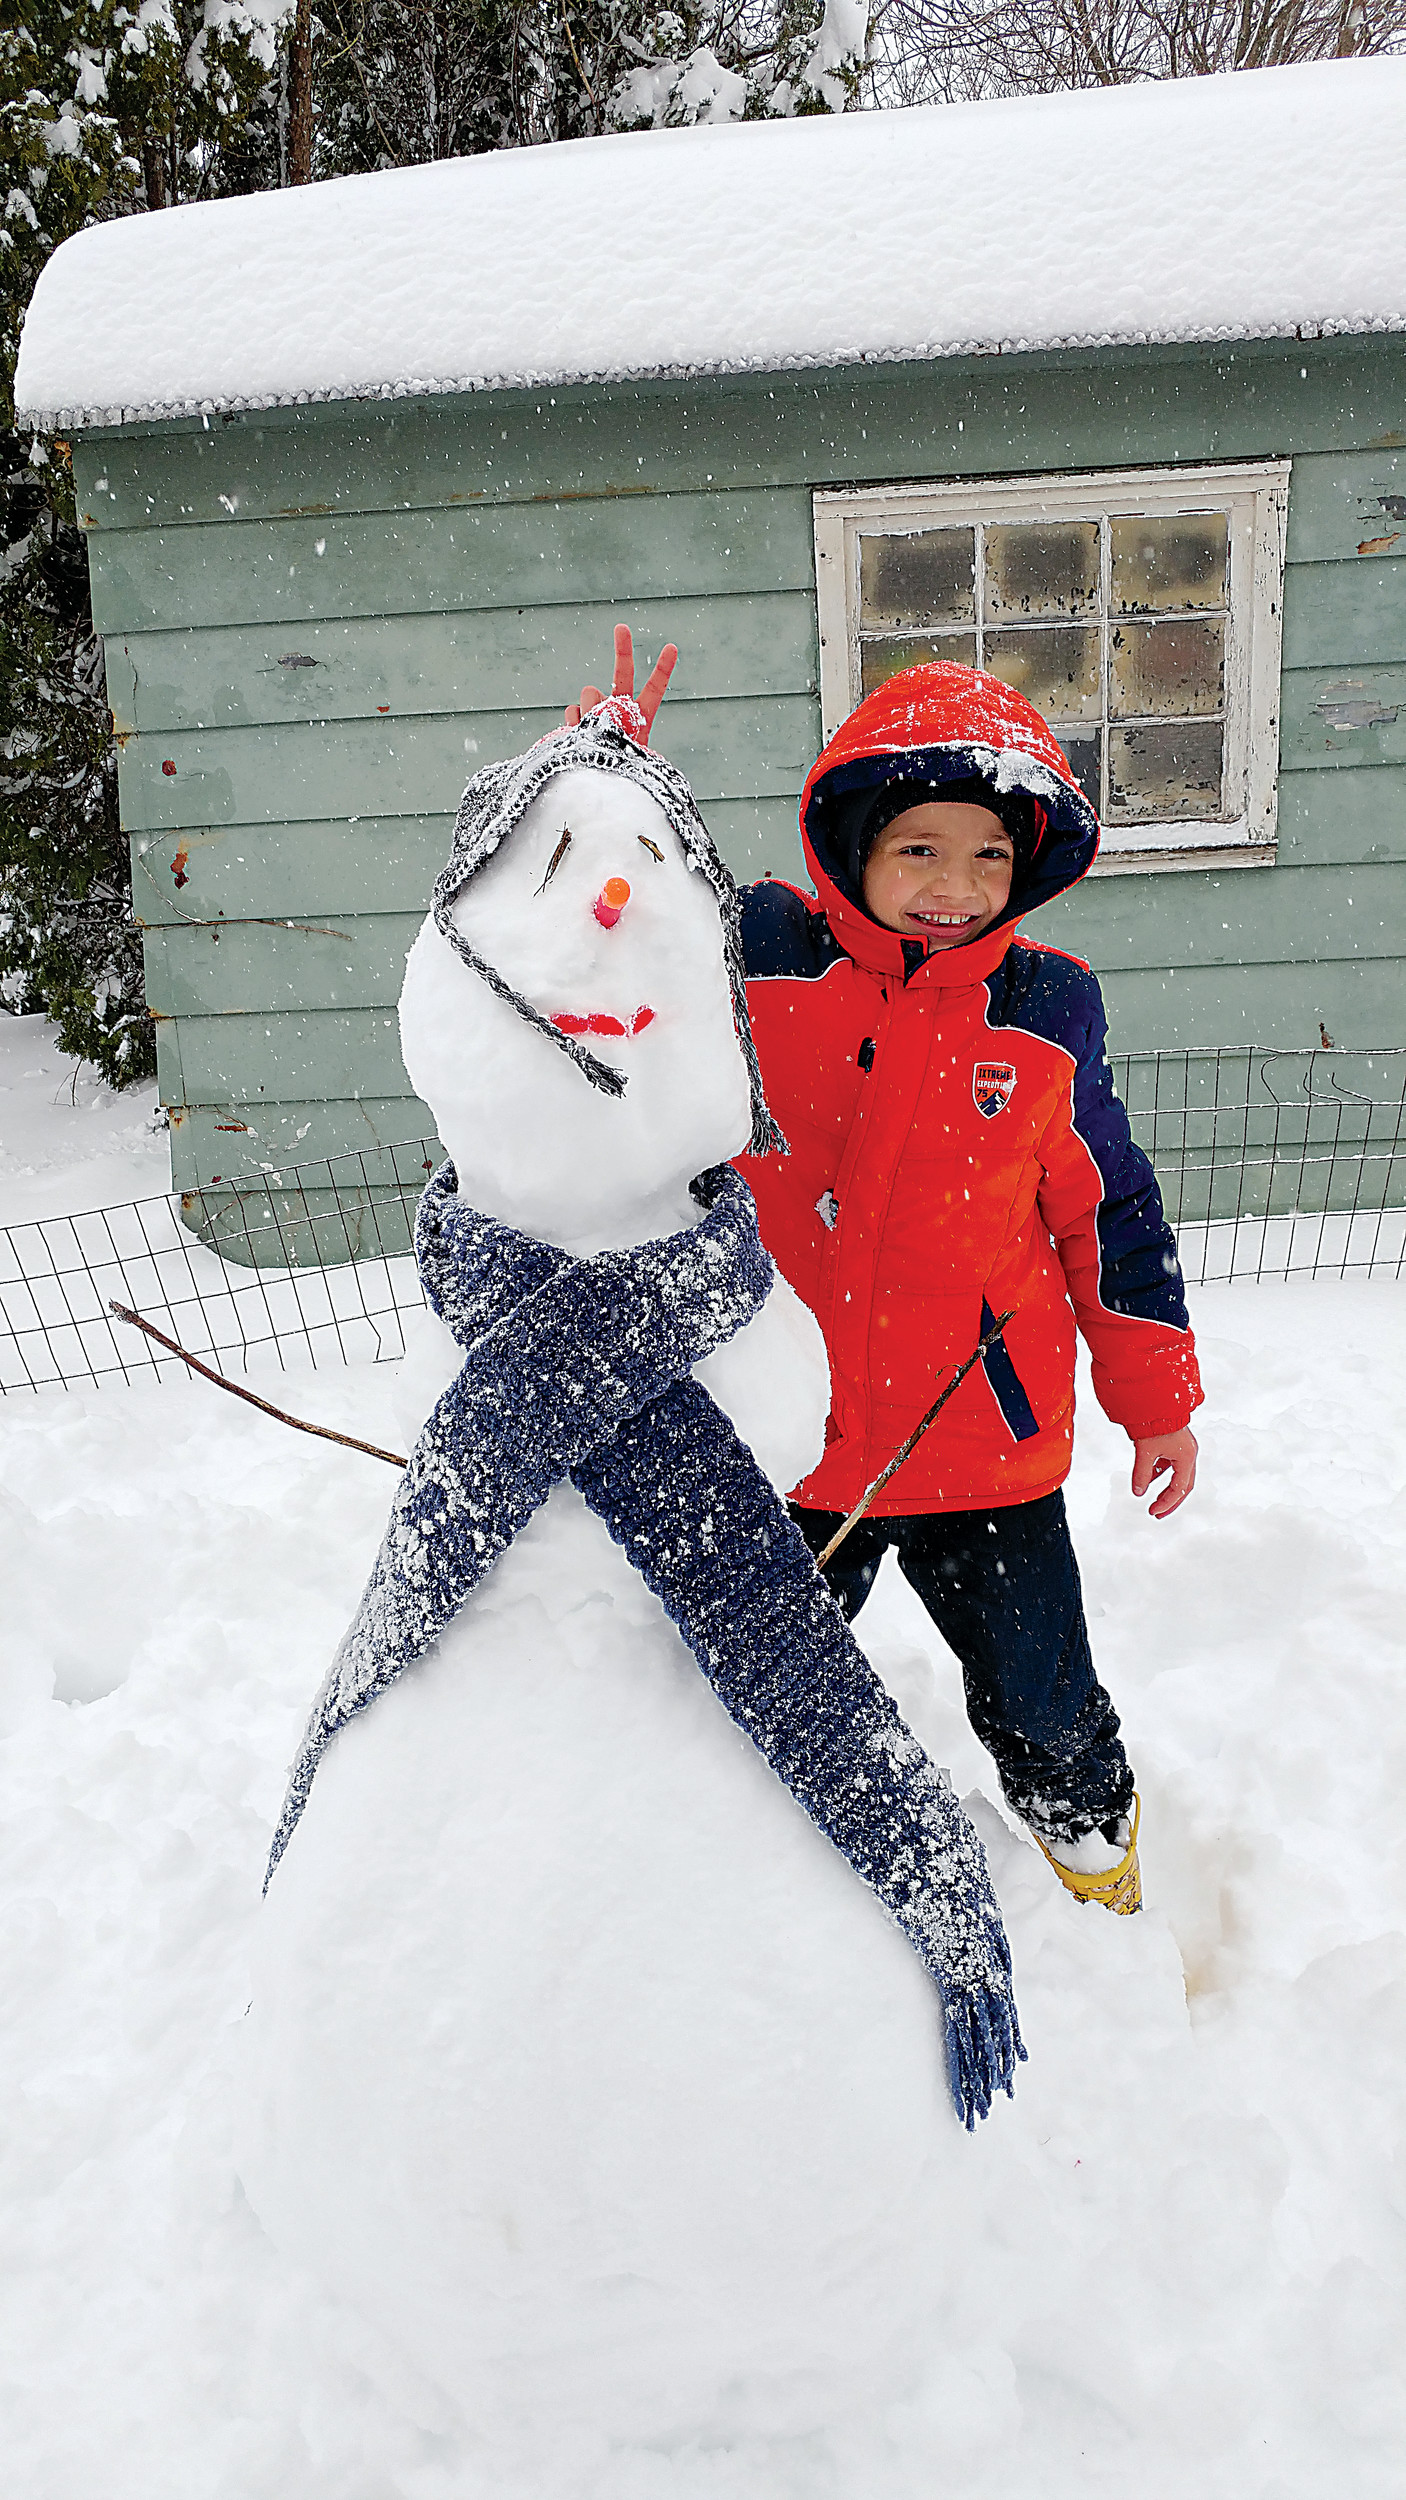 Aden Grogan, 8, and his snowman in Middletown.